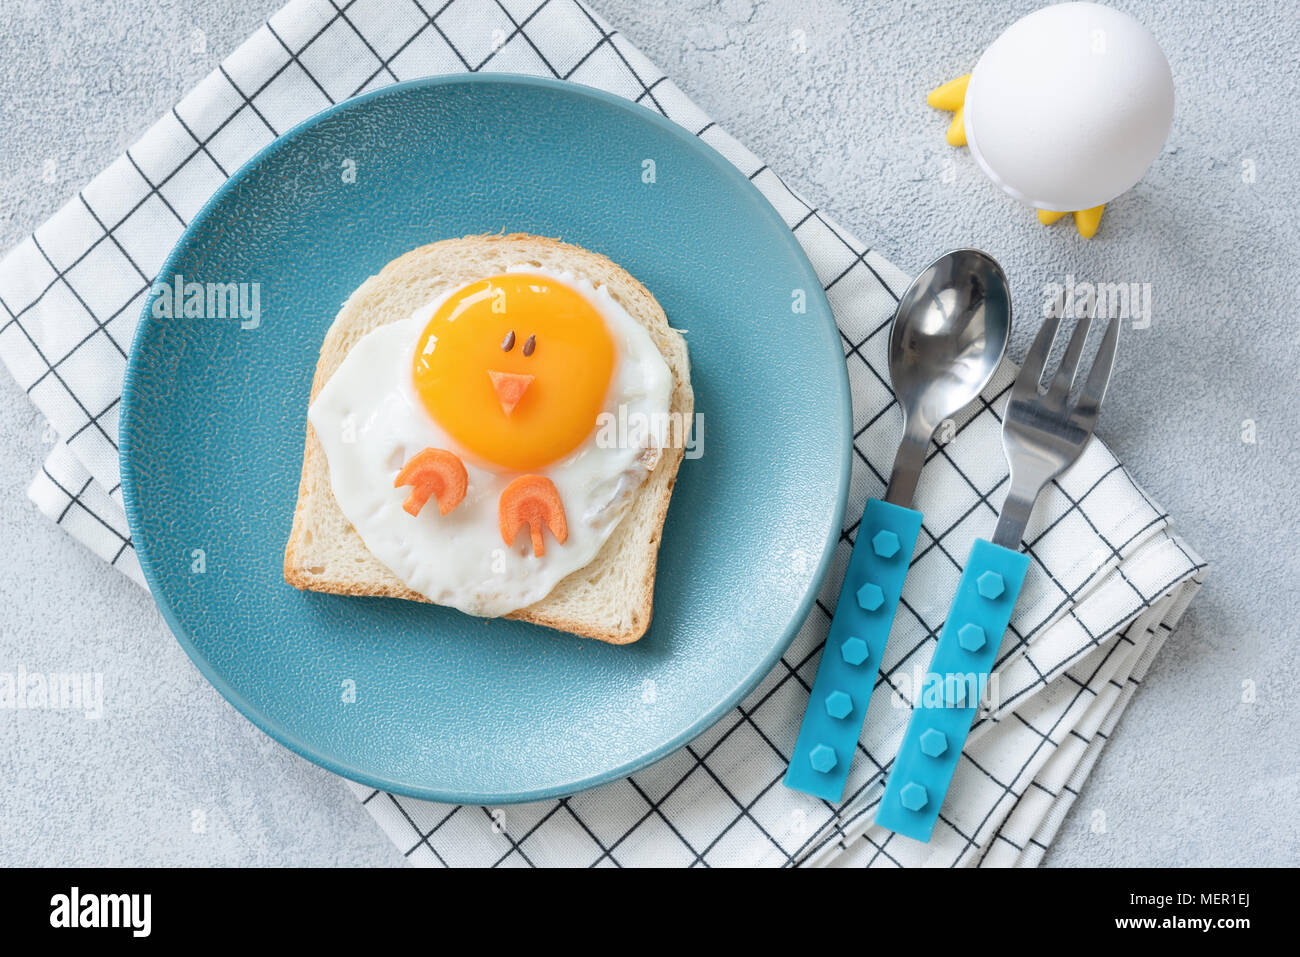 Funny egg toast for kids on blue plate, top view. Chicken shaped sandwich, food art. - Stock Image